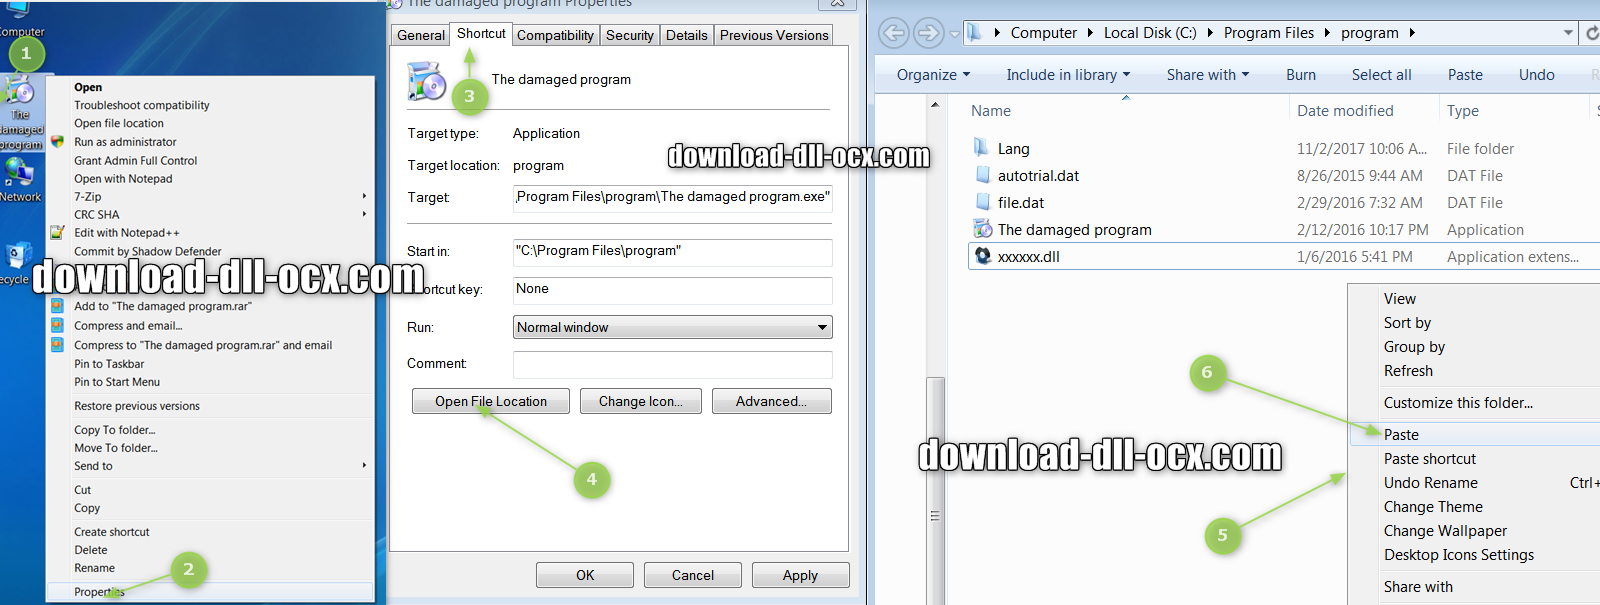 how to install AdbWinApi.dll file? for fix missing